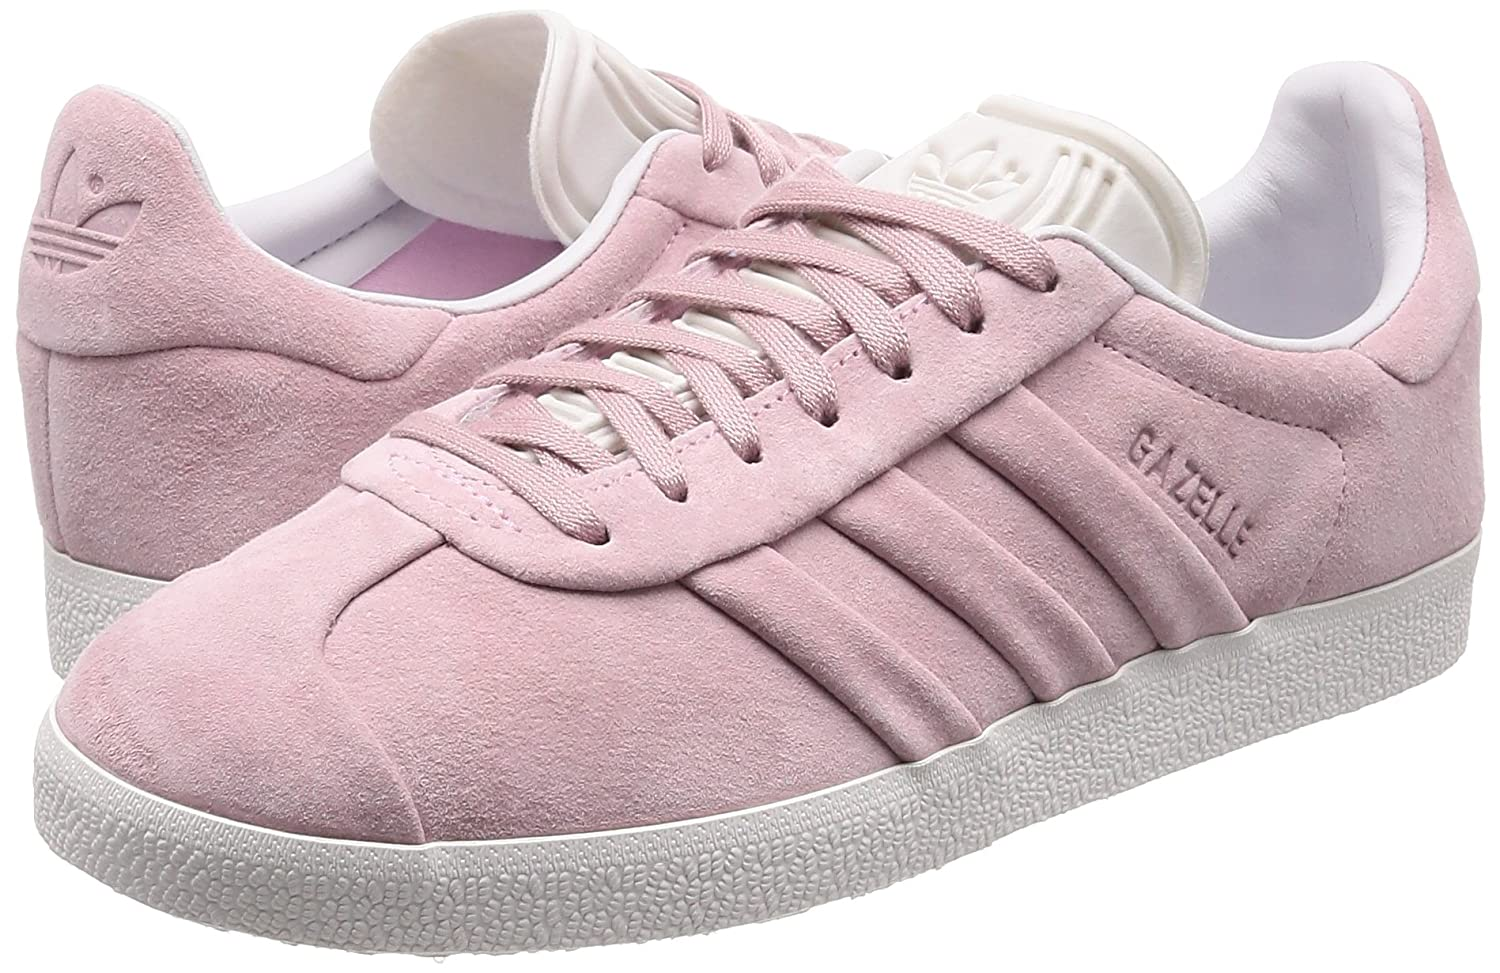 on sale 3f471 2d484 Amazon.com  adidas Gazelle Stitch and Turn W Womens Trainers Pink - 6 UK   Fashion Sneakers